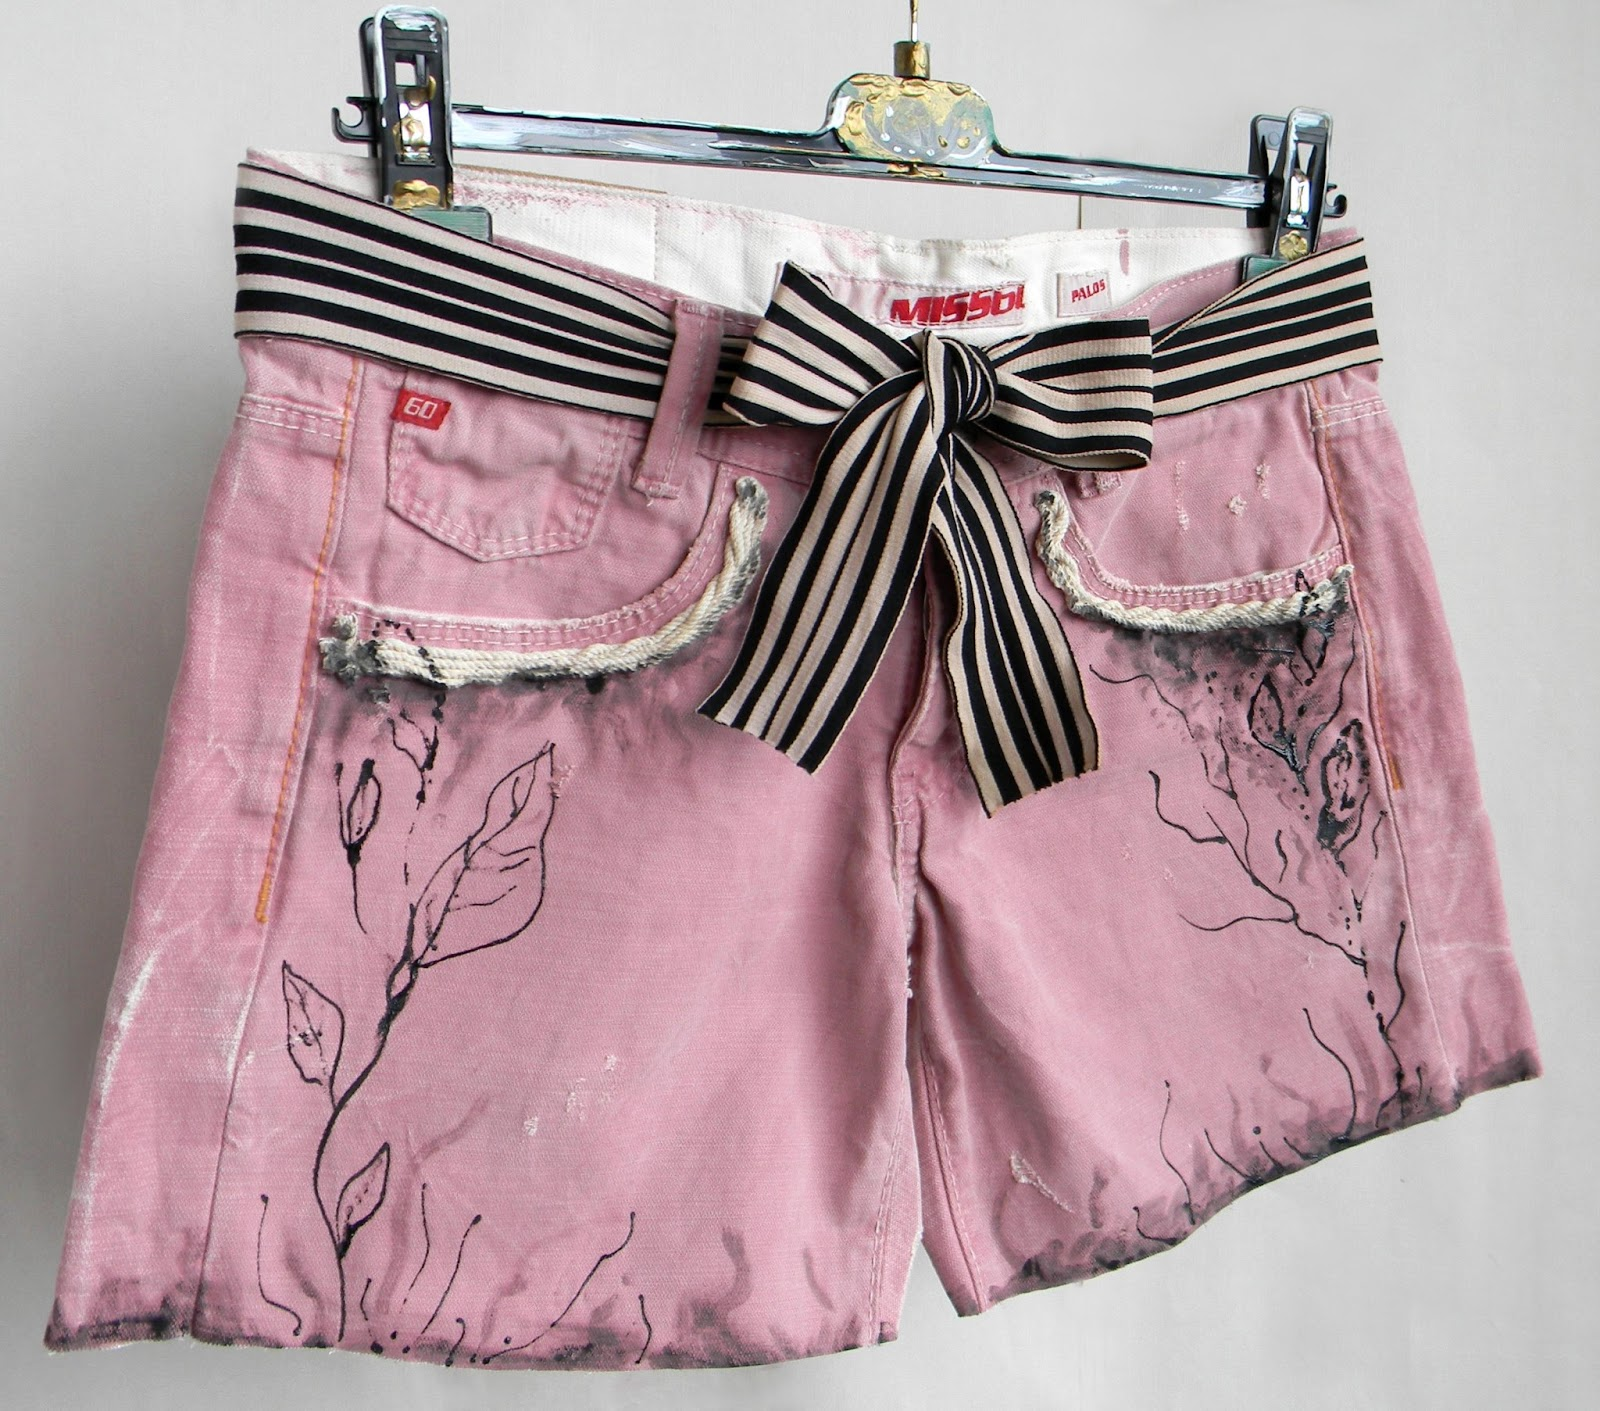 Unique Altered Fashion Scratched Pink Jeans Short with Original Painting